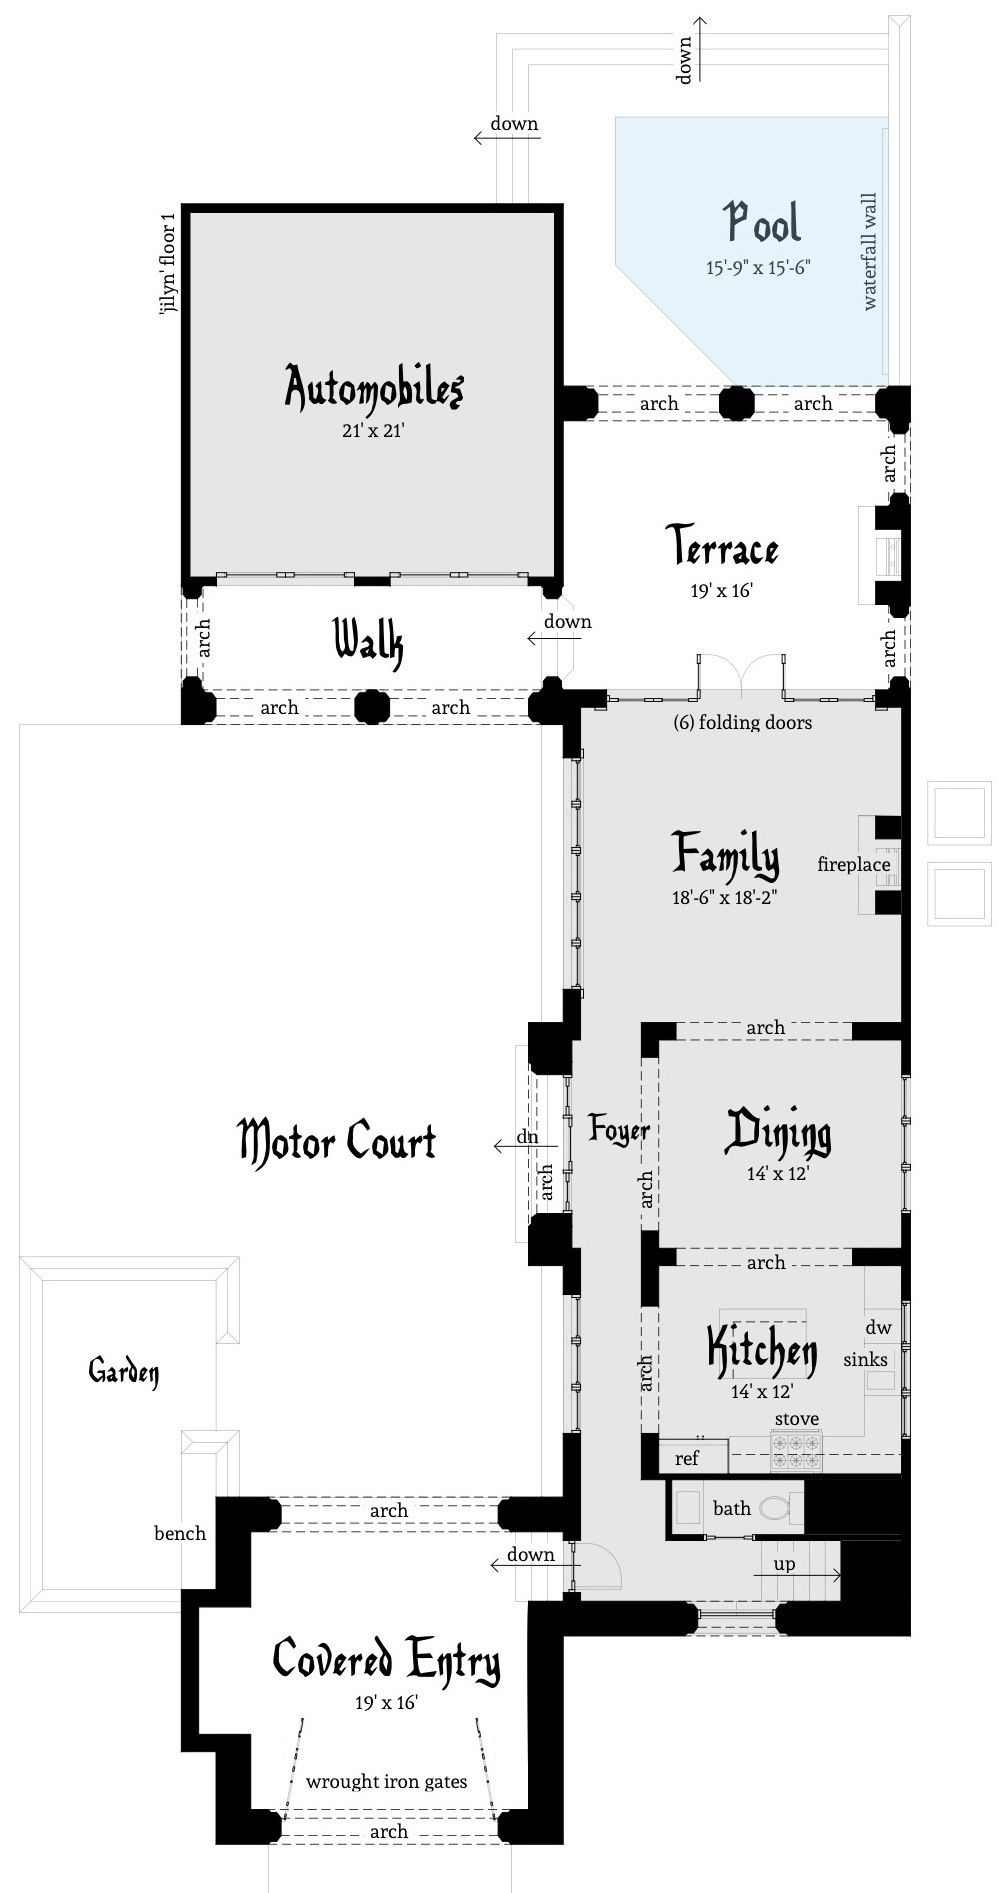 Dantyree Com Nbspthis Website Is For Sale Nbspdantyree Resources And Information Castle Plans Castle House Plans Castle Floor Plan